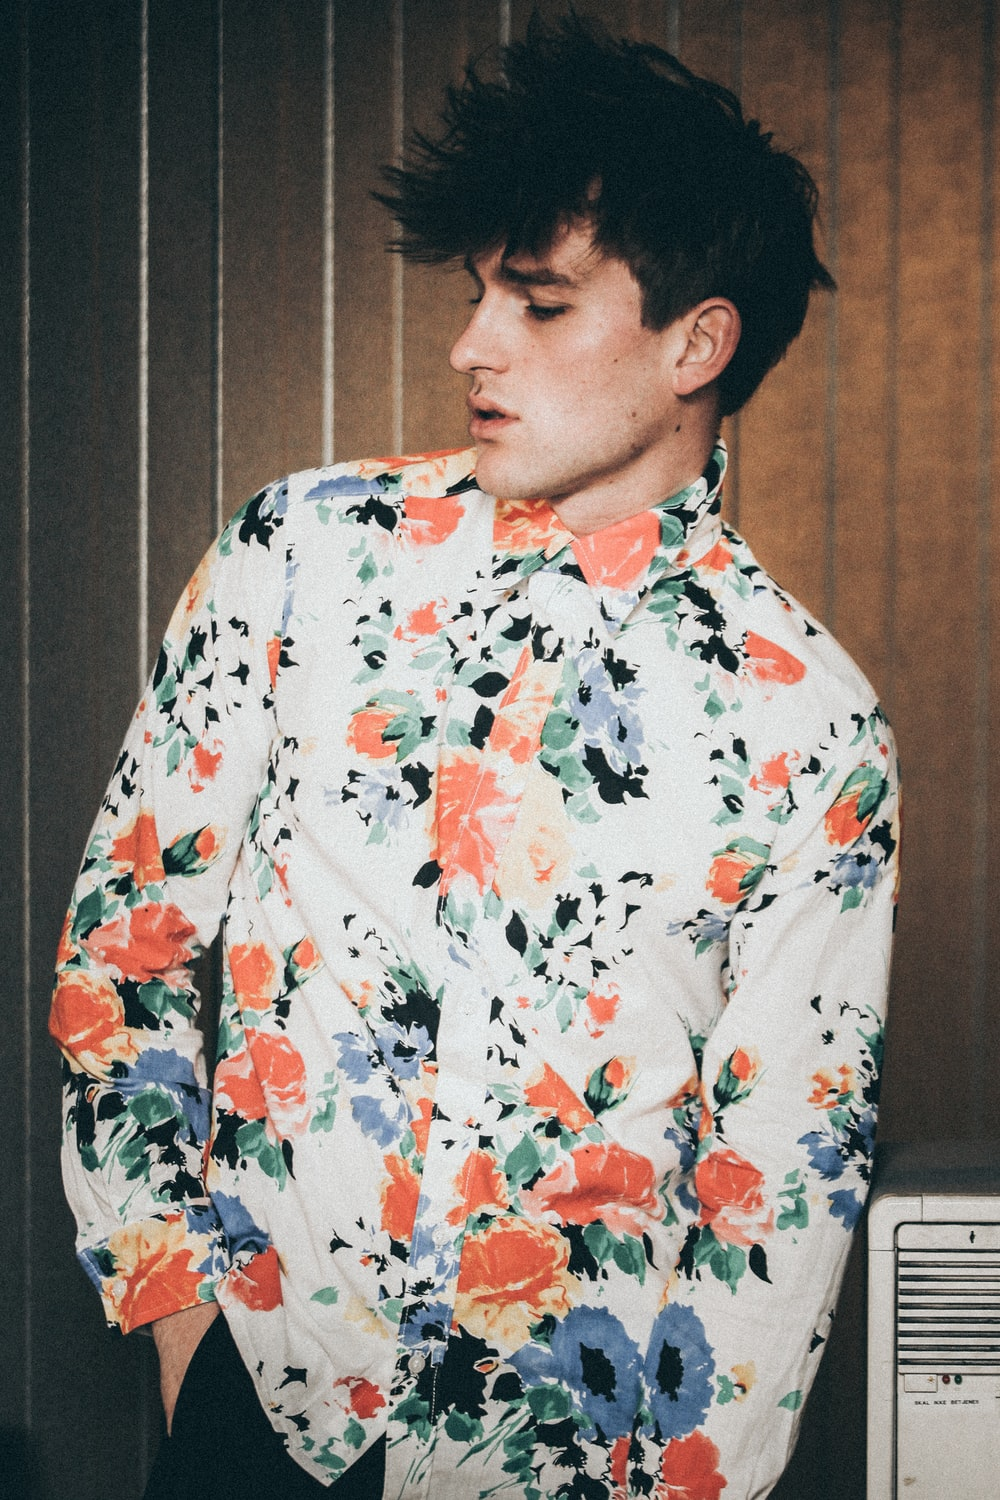 multicolored floral dress shirt